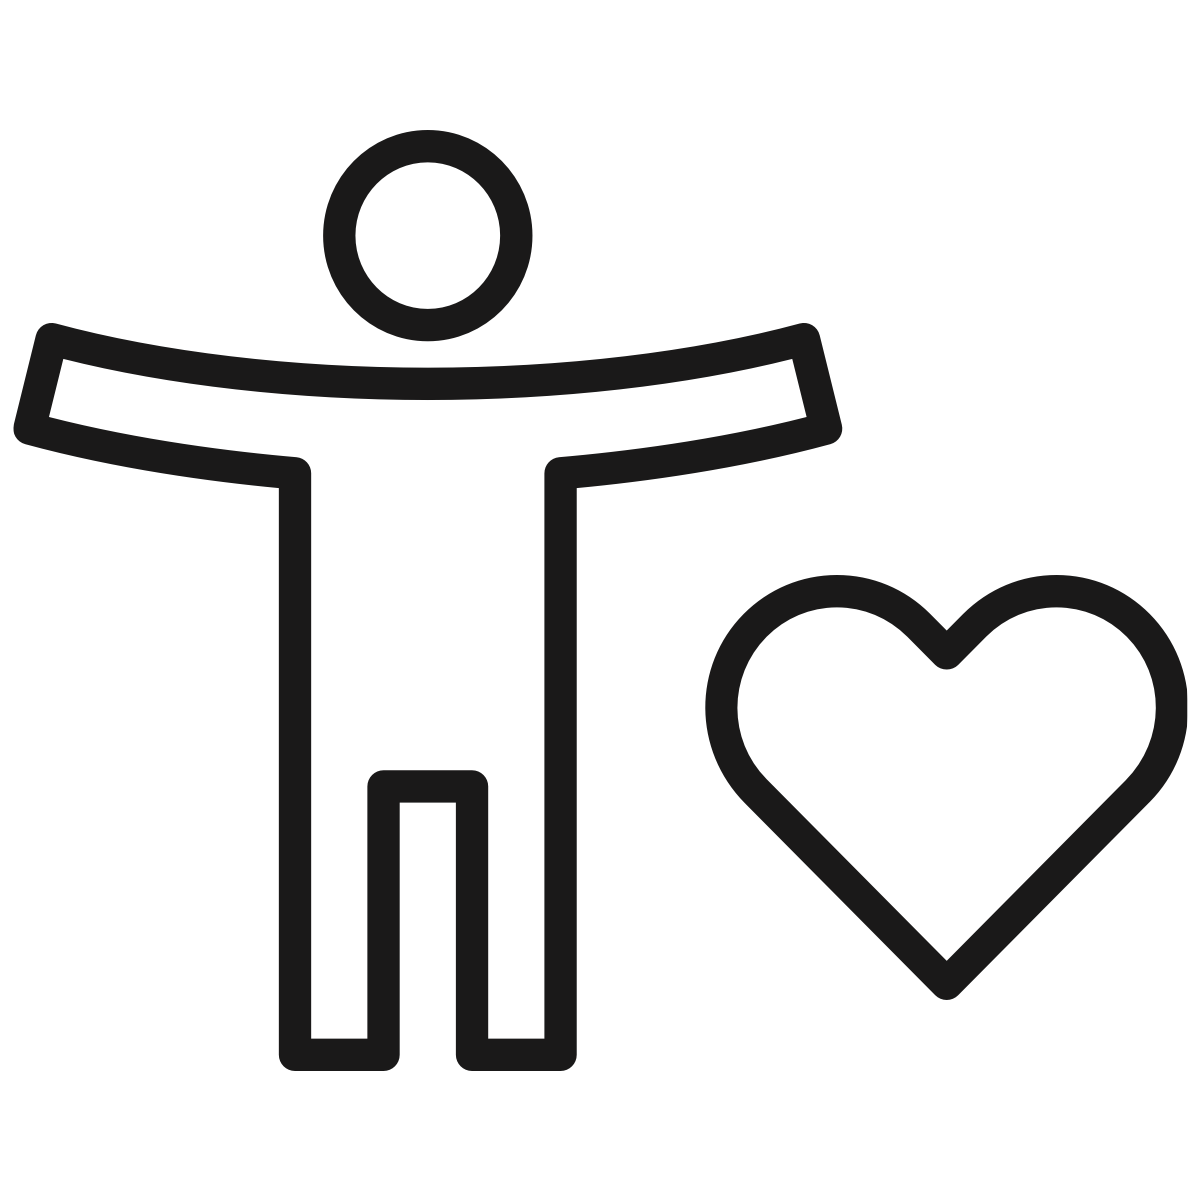 An illustrated black and white icon depicting a person and a heart, signifying wellness